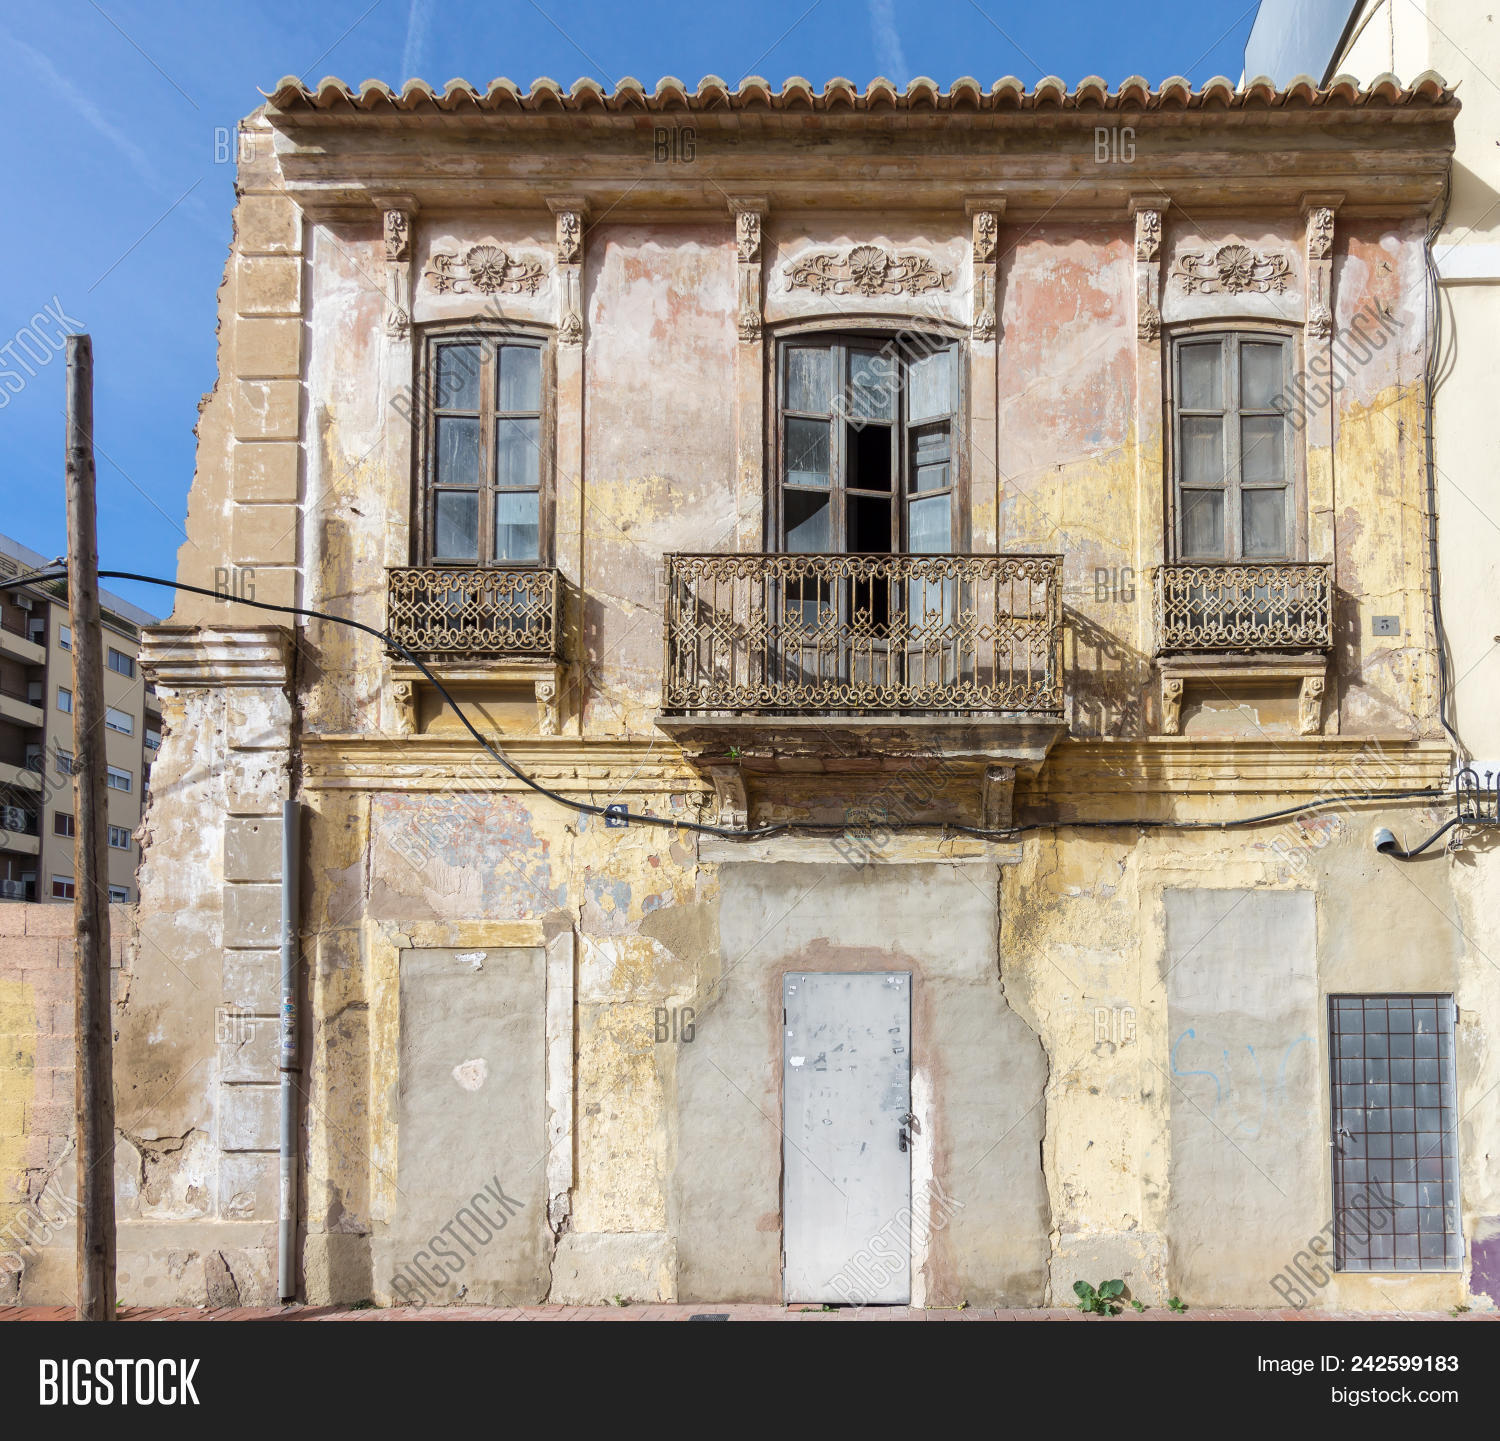 Facade Small Old House Image Photo Free Trial Bigstock